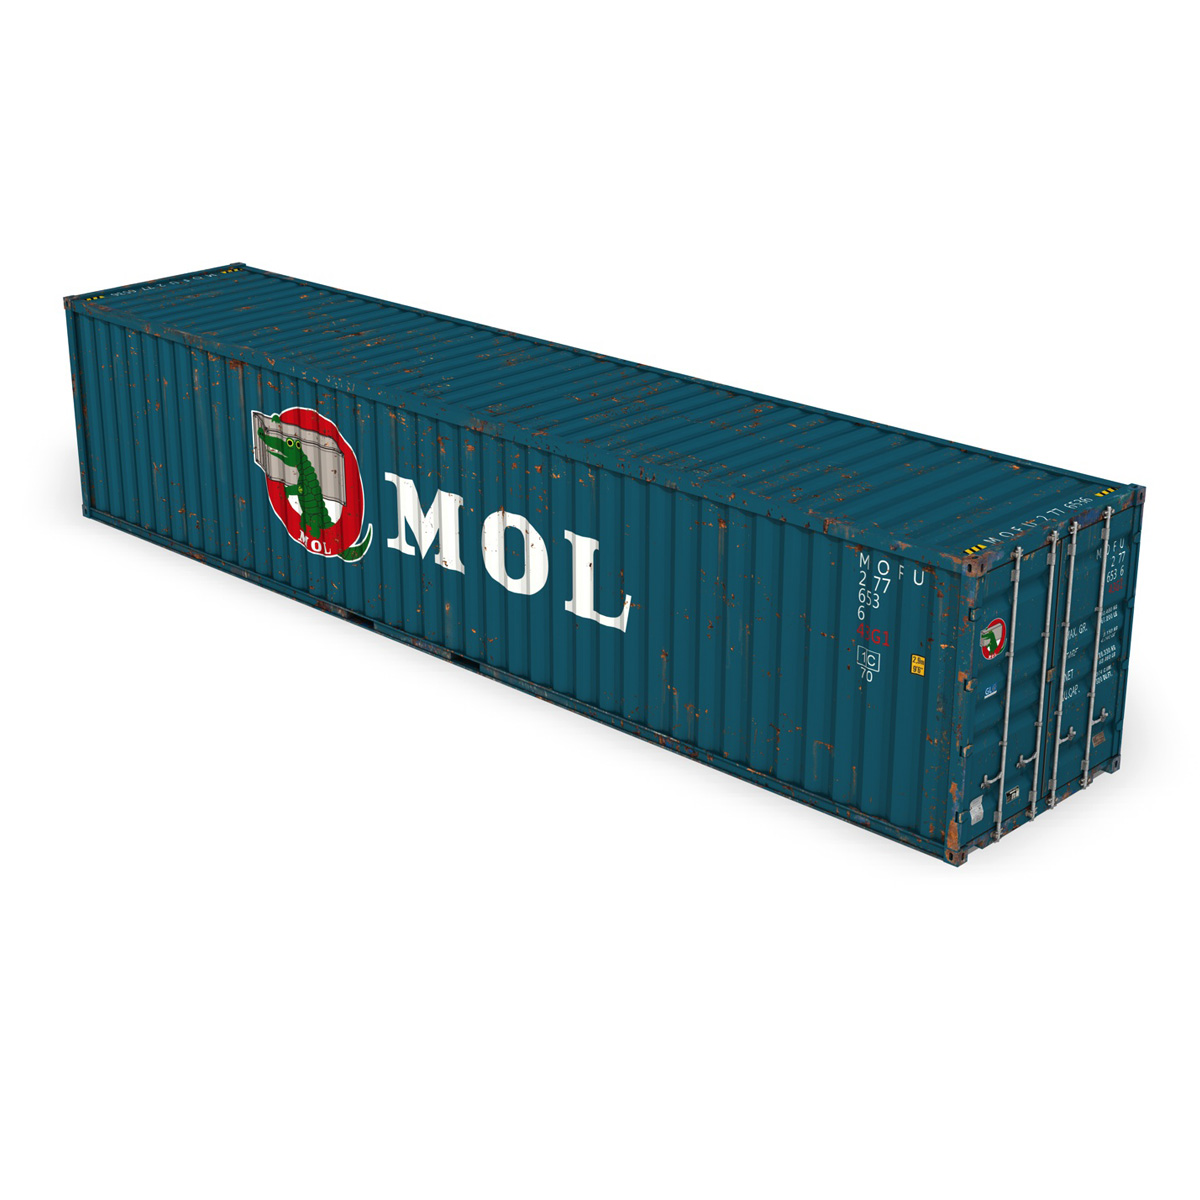 40ft shipping container – mol 3d model 3ds fbx lwo lw lws obj c4d 265133